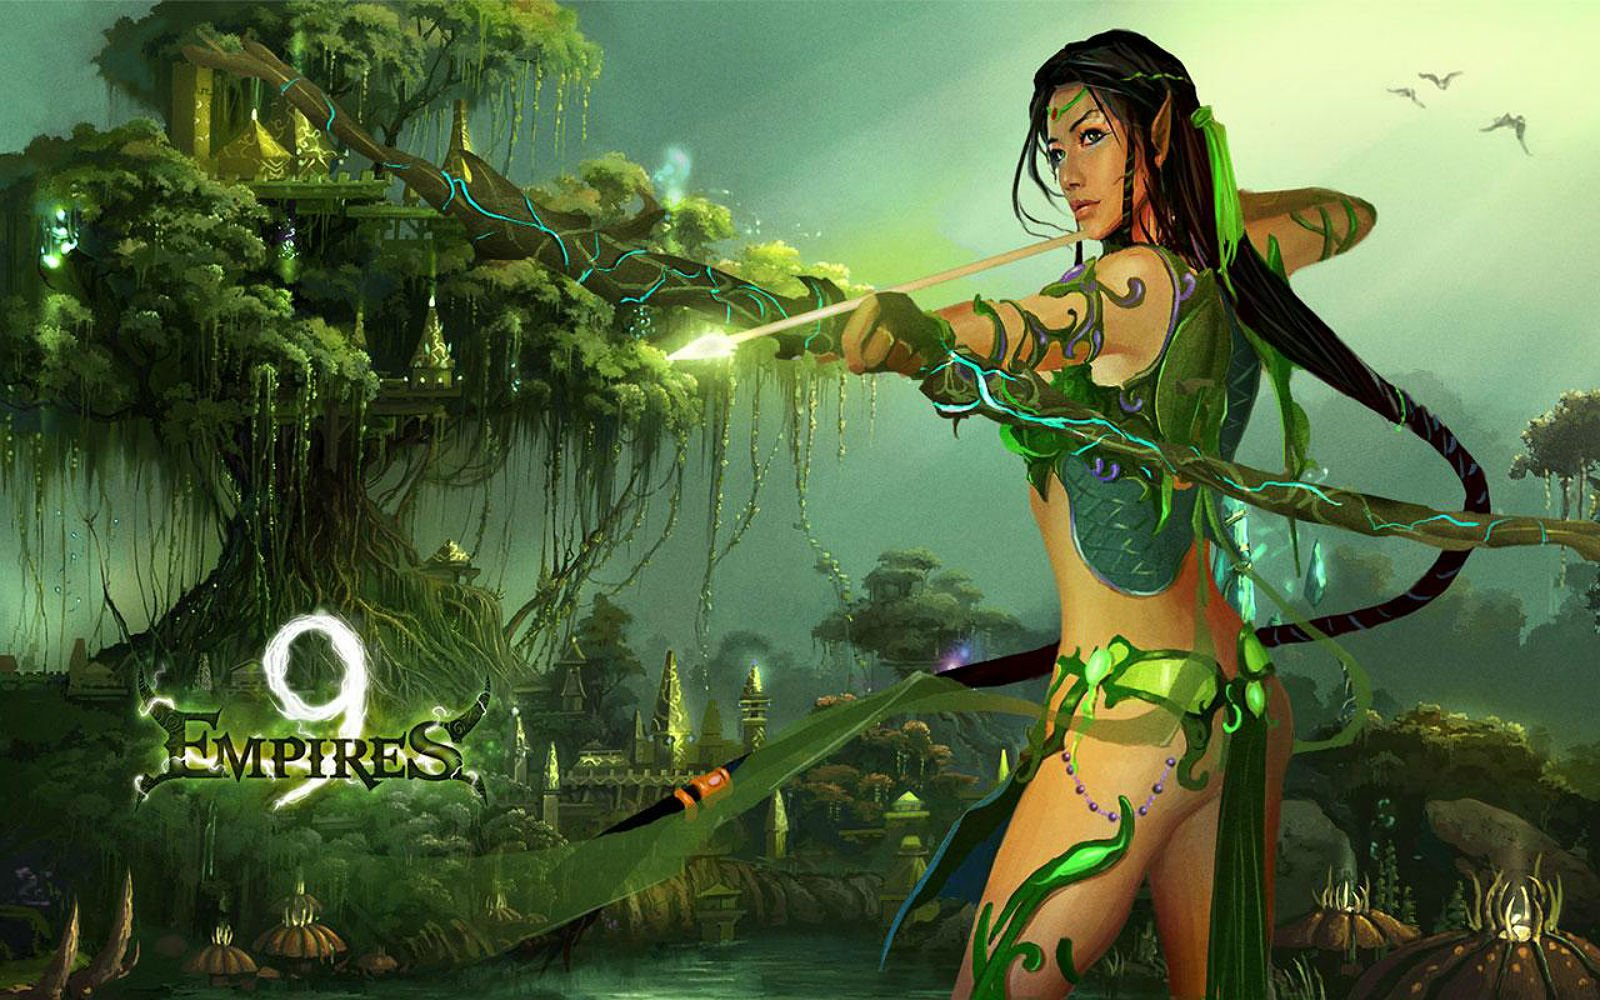 Anime elf female warrior images nackt video